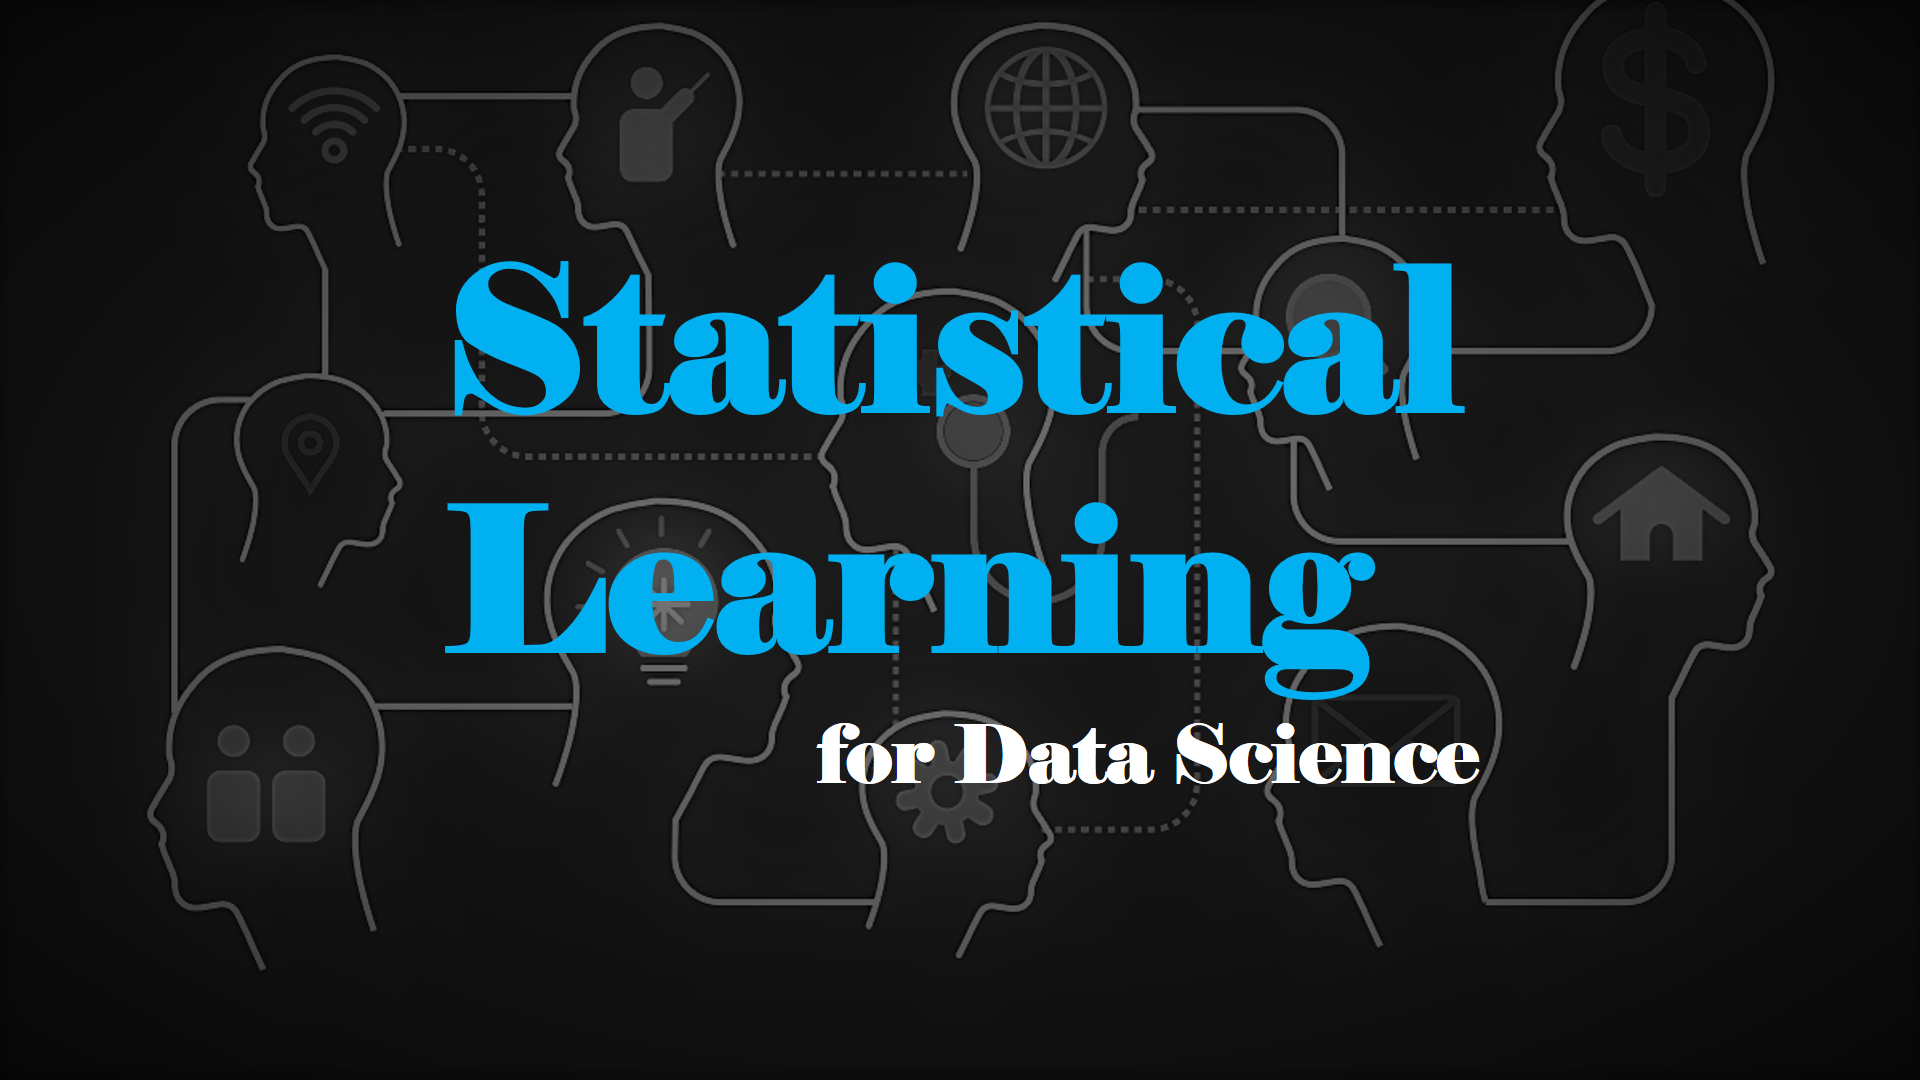 Statistical Learning for Data Science - Towards Data Science